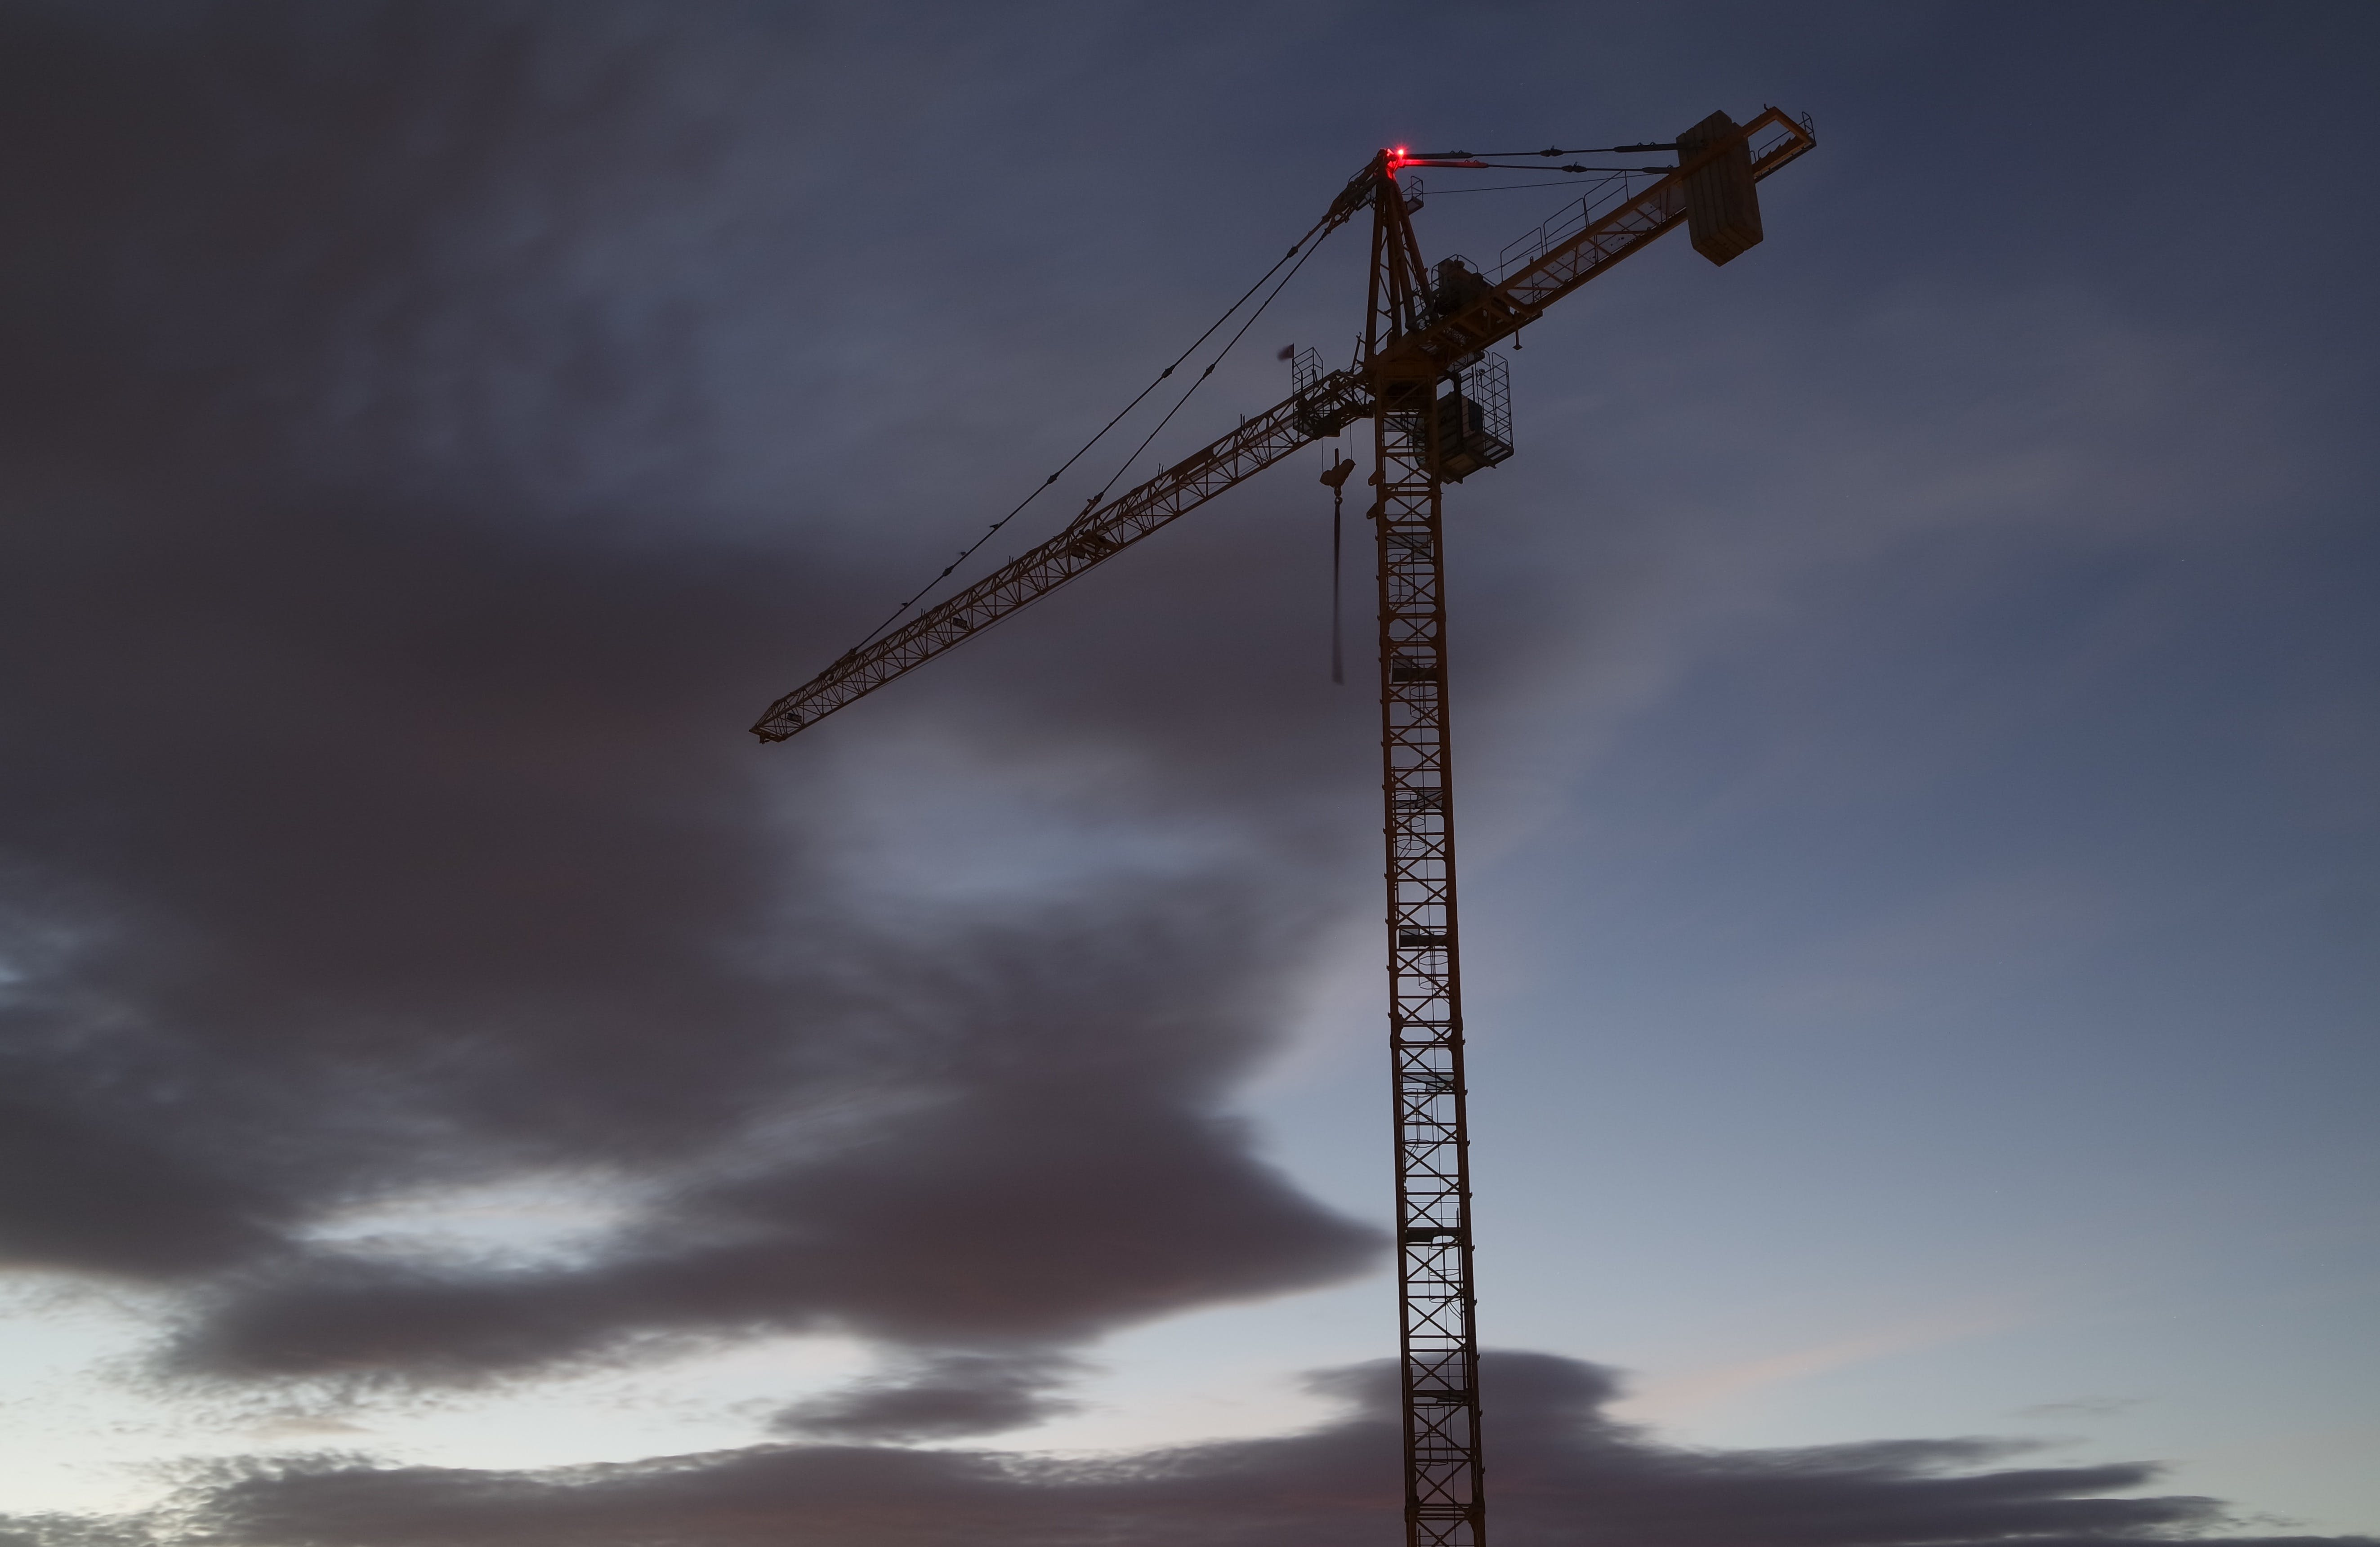 Tower Crane at Nighttime